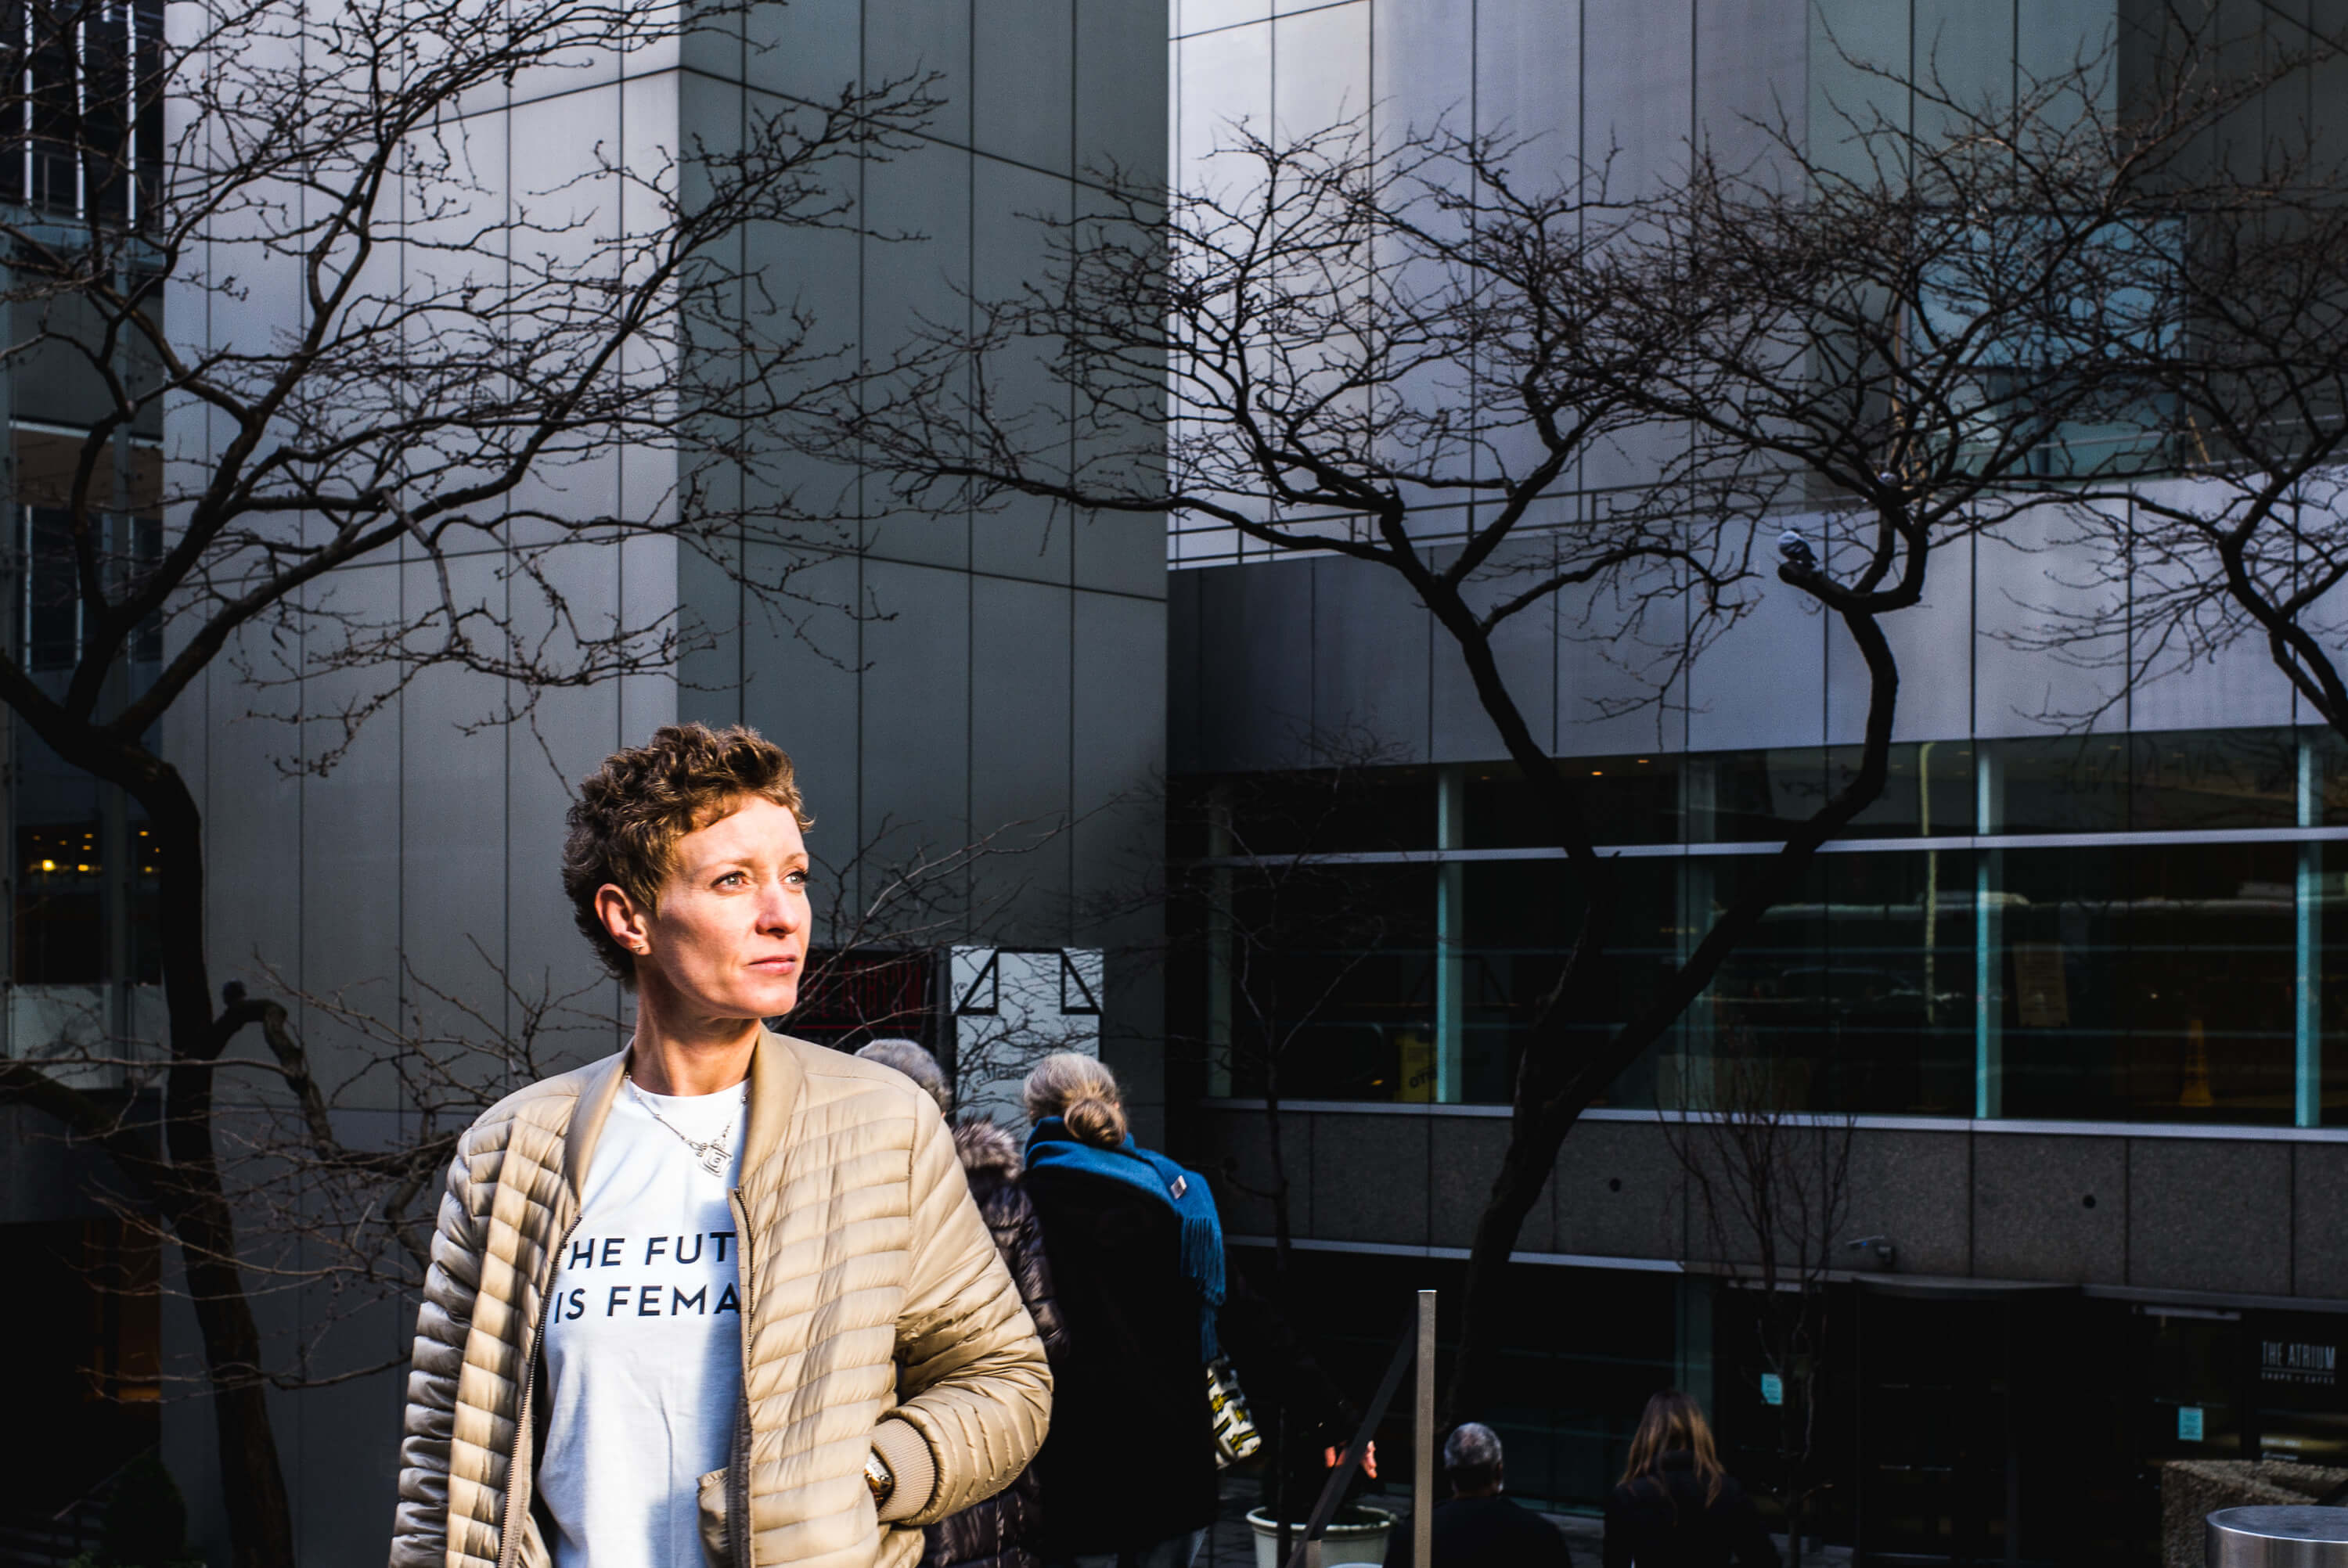 Woman wearing The Future is Female shirt during Woman´s March on New York City, January 21st. 2017